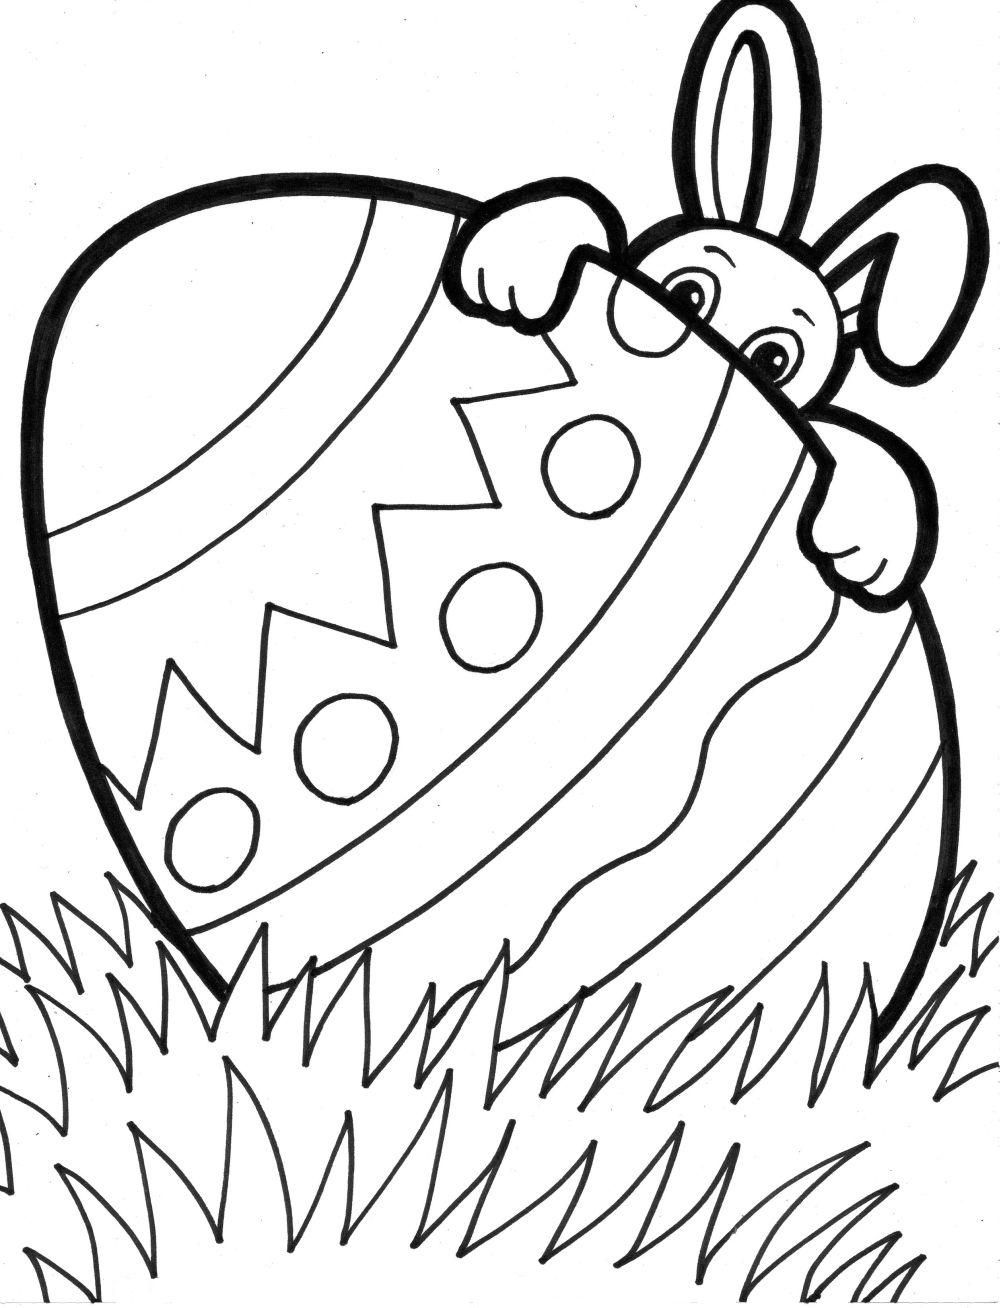 Free Easter Printable Coloring Pages For Kids Easter Games And Activities T Free Easter Coloring Pages Easter Coloring Pages Printable Easter Bunny Colouring